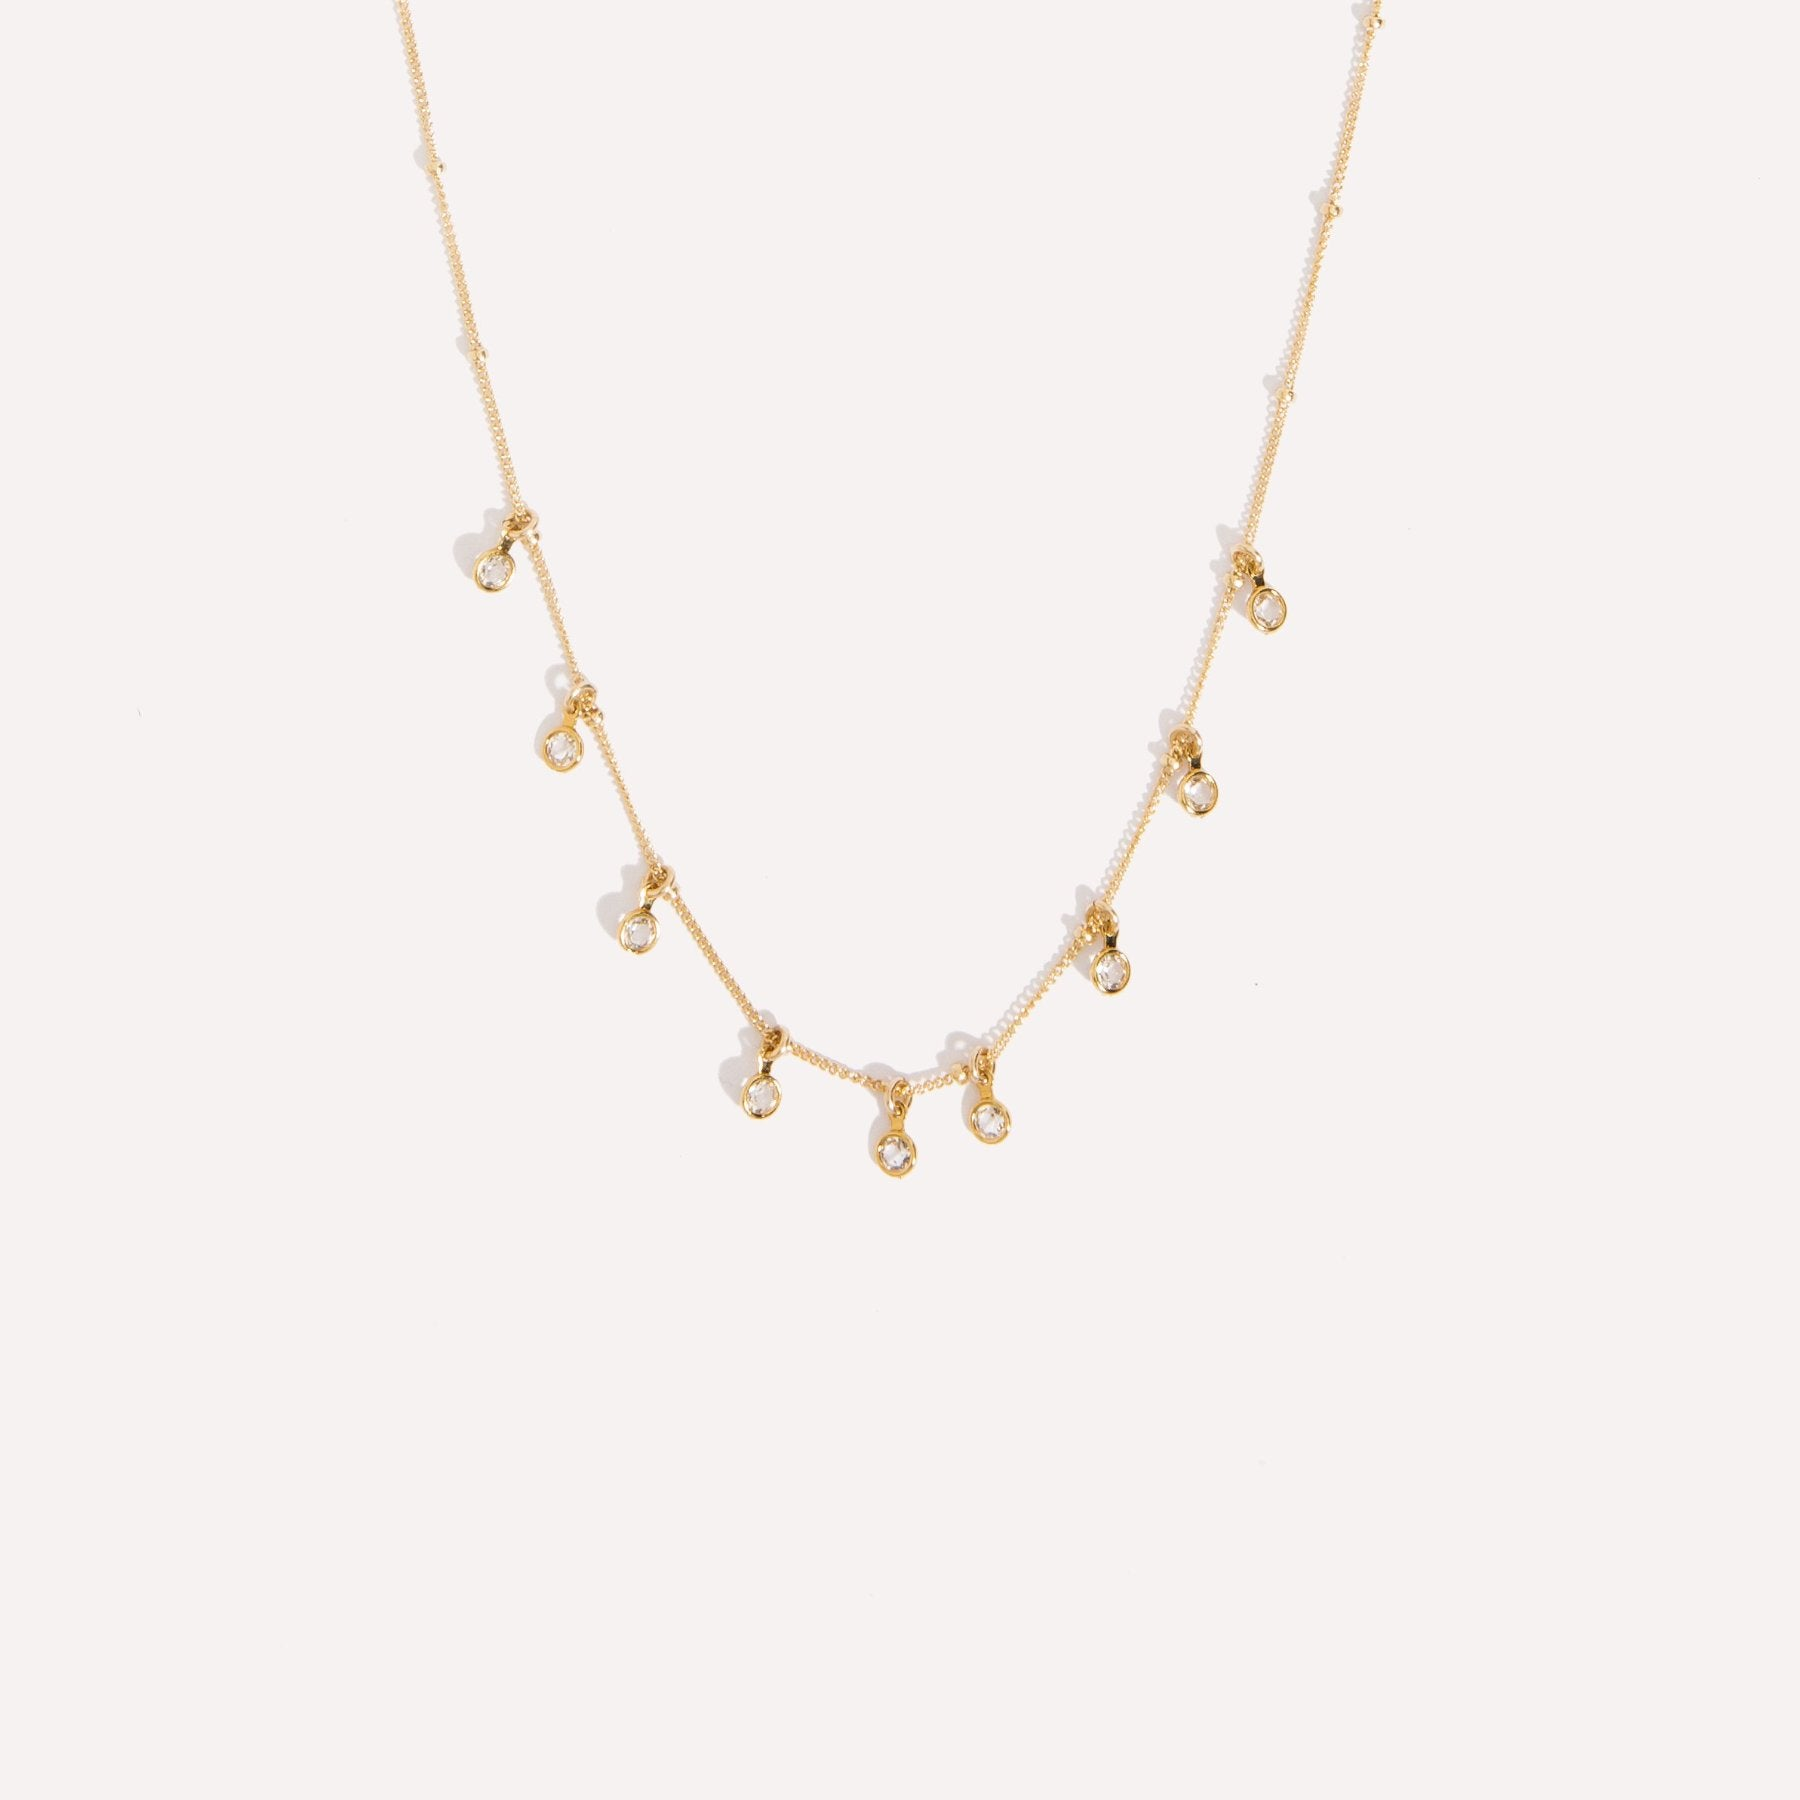 Amarilo Liv Necklace in Metallic Gold pb8tLmMtL6